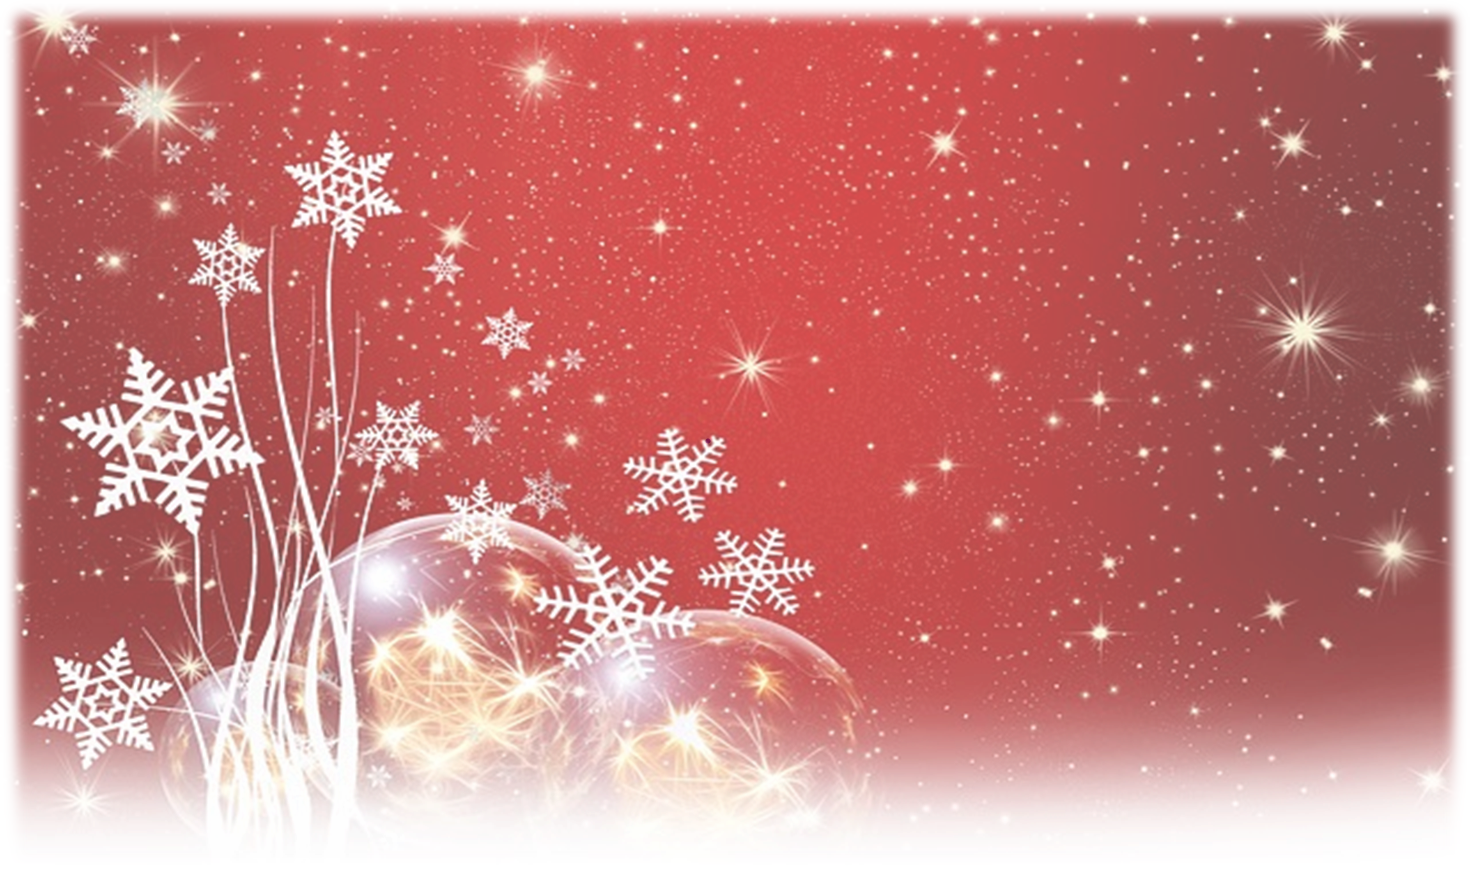 Christmas Bulbs and Snowflakes with red background